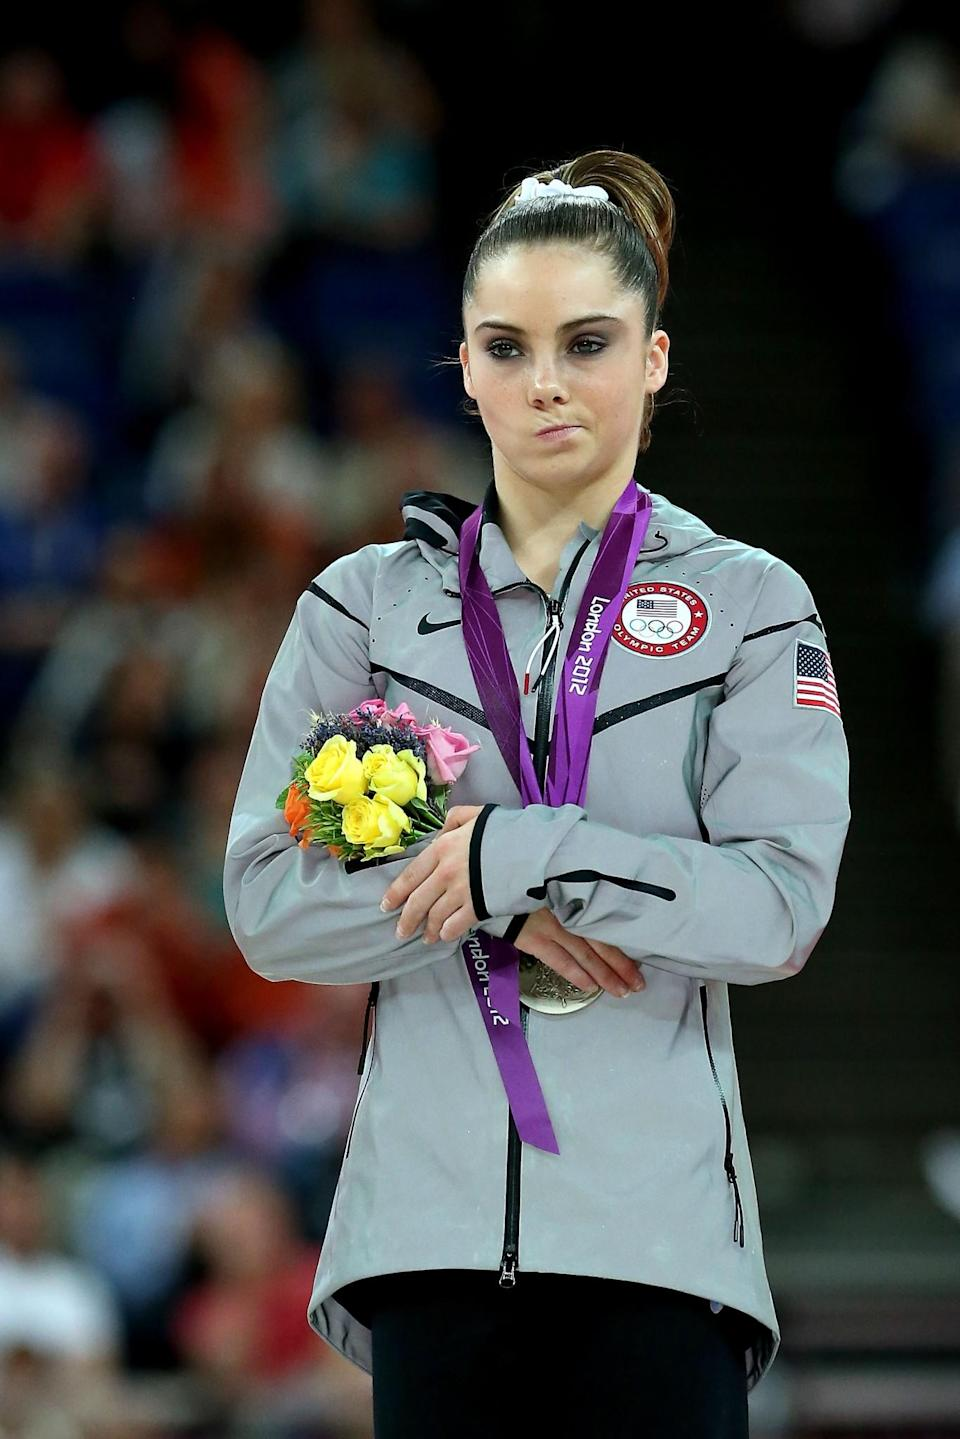 <p>McKayla Maroney Maroney of the United States stands on the podium with her silver medal during the medal ceremony following the Artistic Gymnastics Women's Vault final on Day 9 of the London 2012 Olympic Games at North Greenwich Arena on August 5, 2012 in London, England. (Photo by Ronald Martinez/Getty Images) </p>